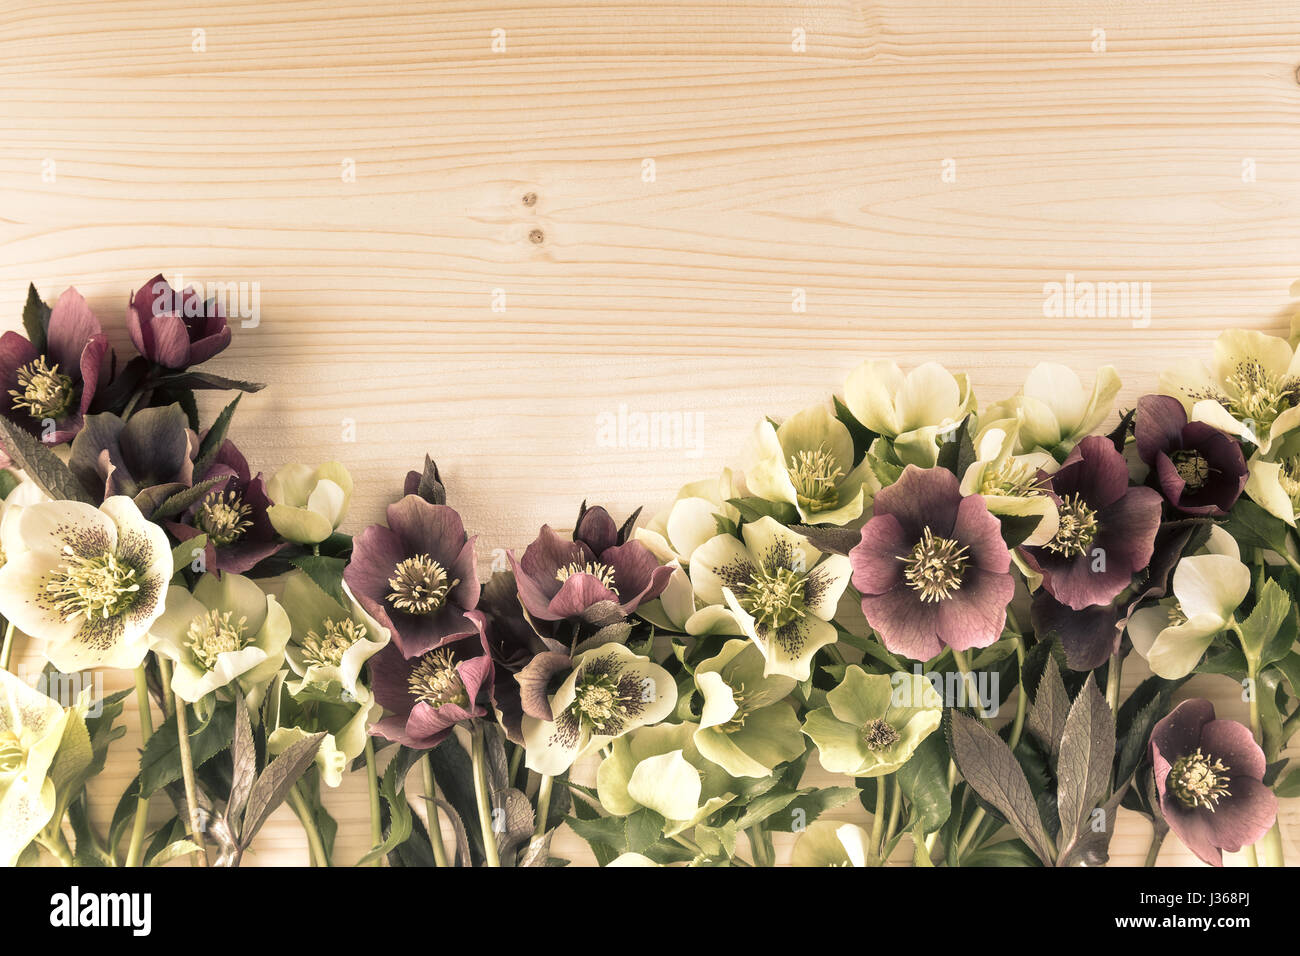 Vintage Spring Flowers Background With Lenten Roses Or Hellebore